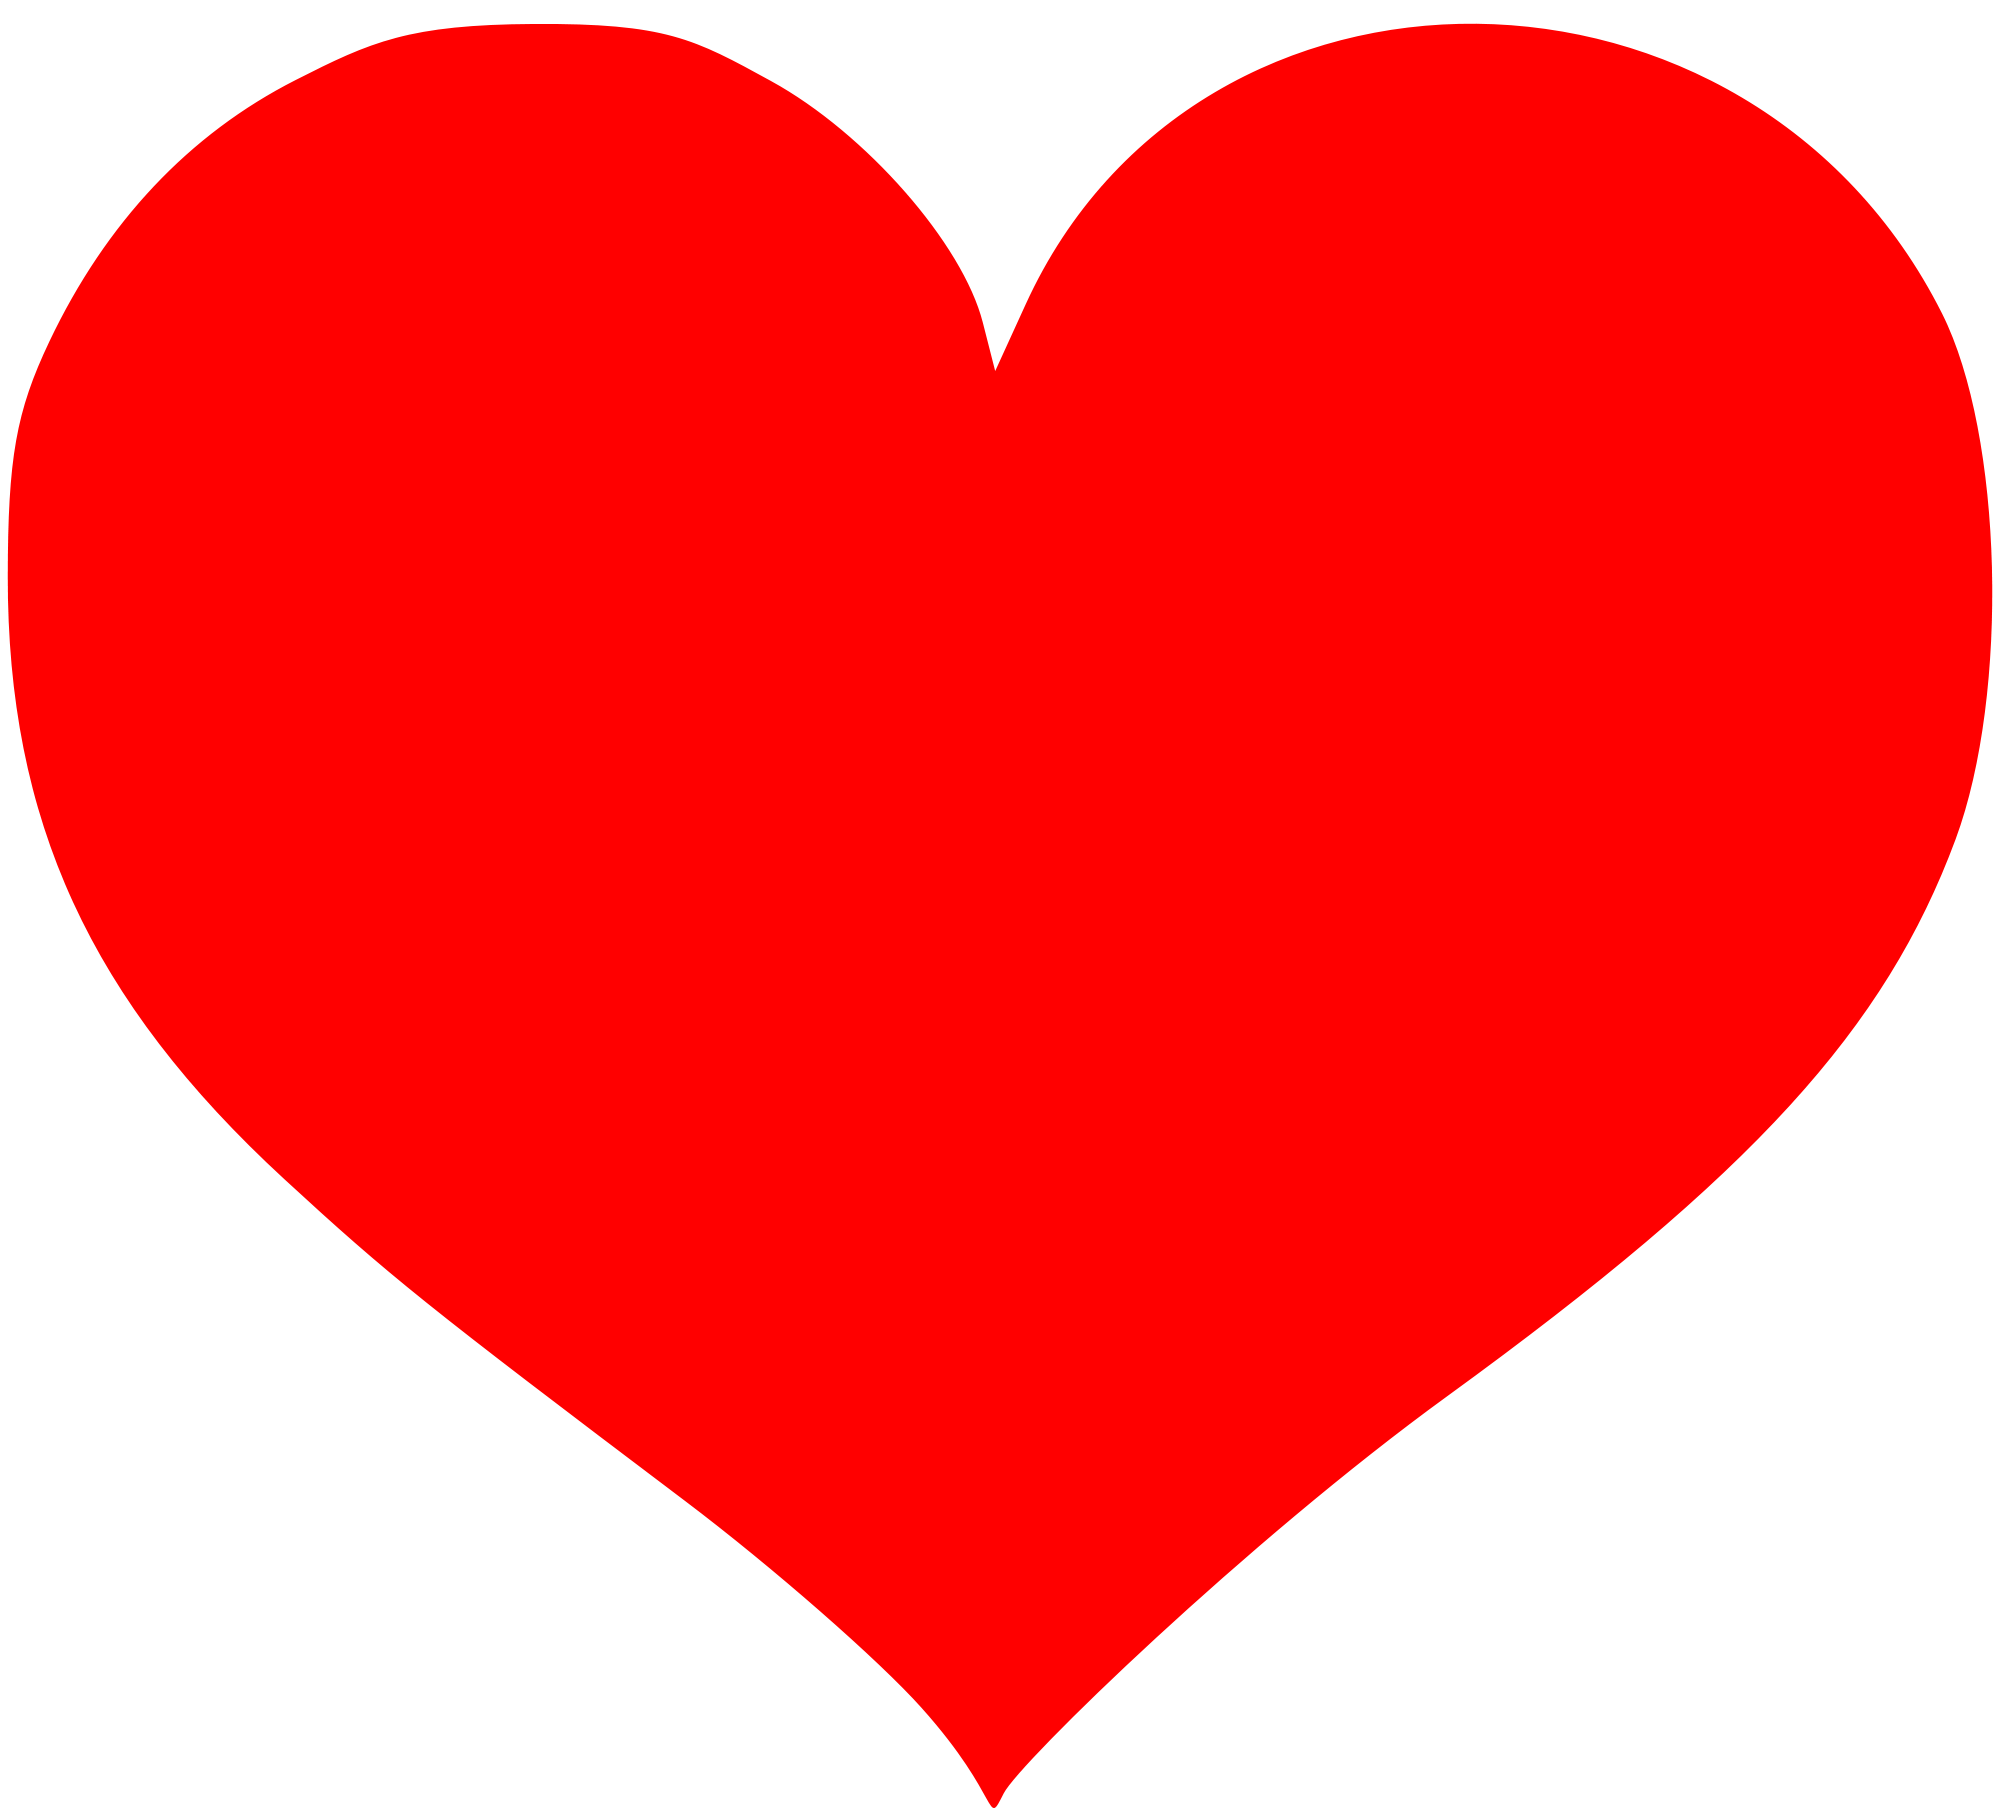 Heart svg #17, Download drawings